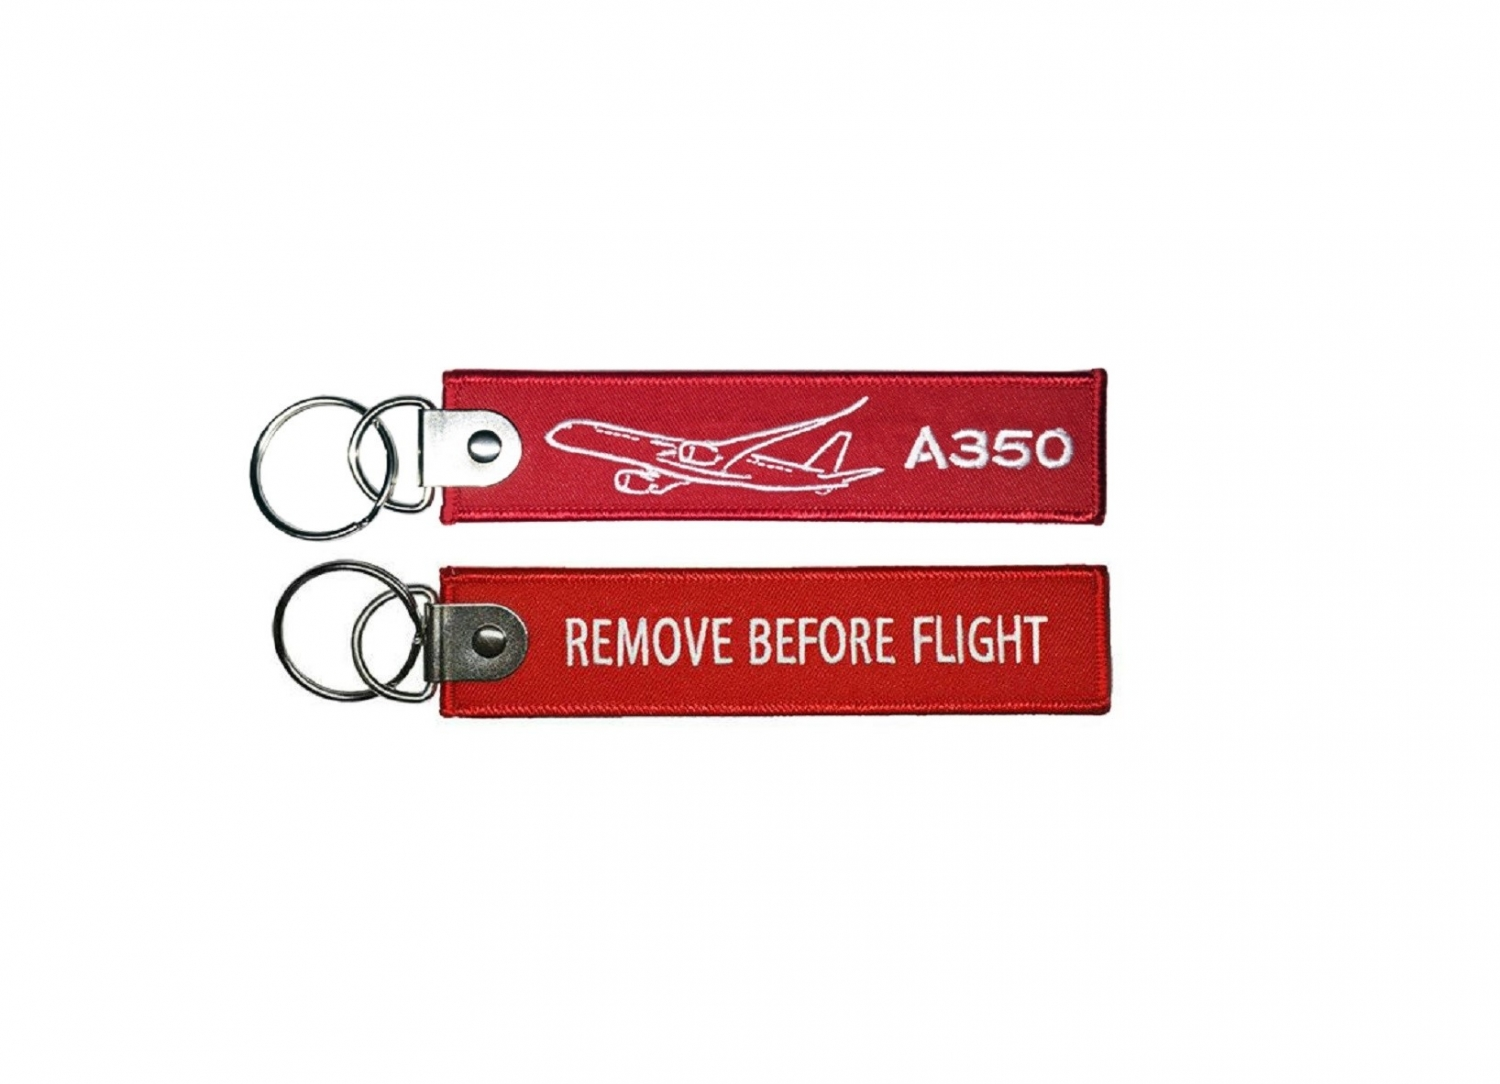 Брелок «Remove before flight А350»